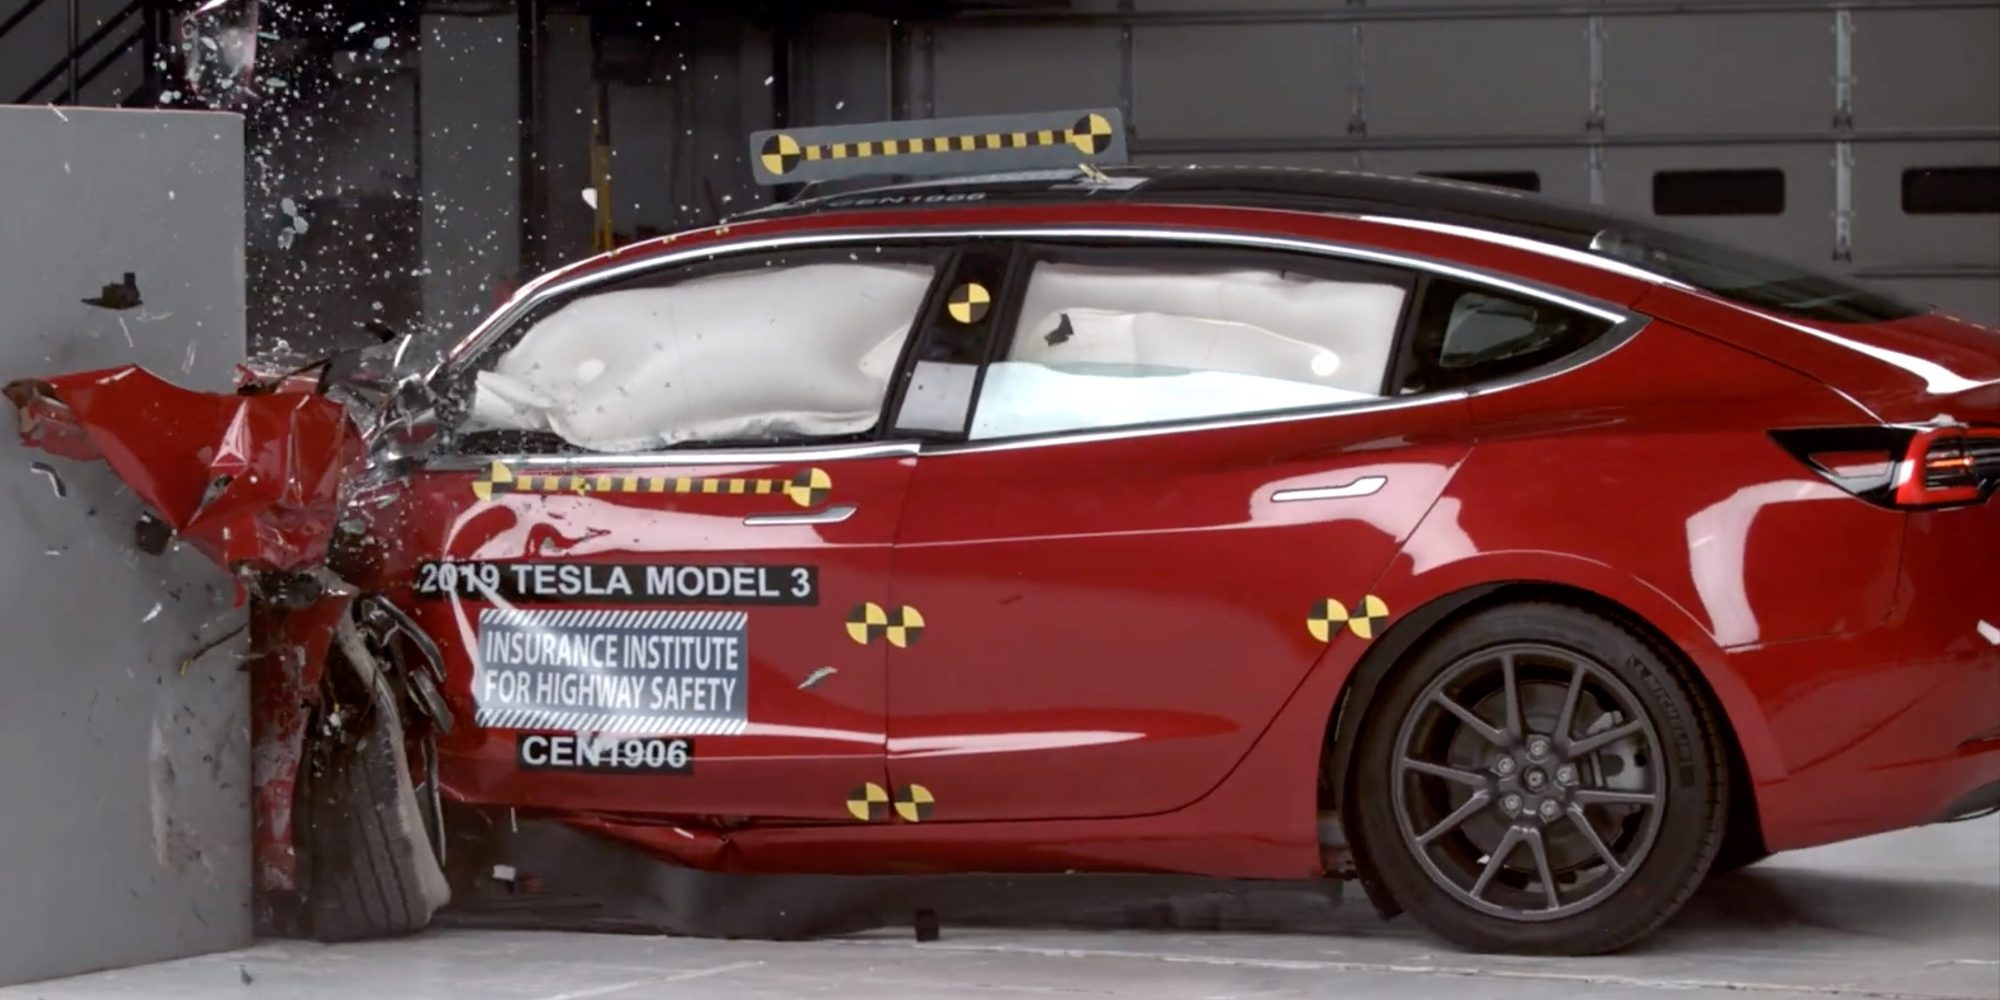 Tesla Model 3 earns IIHS Top Safety Pick+, highest possible safety award - Electrek